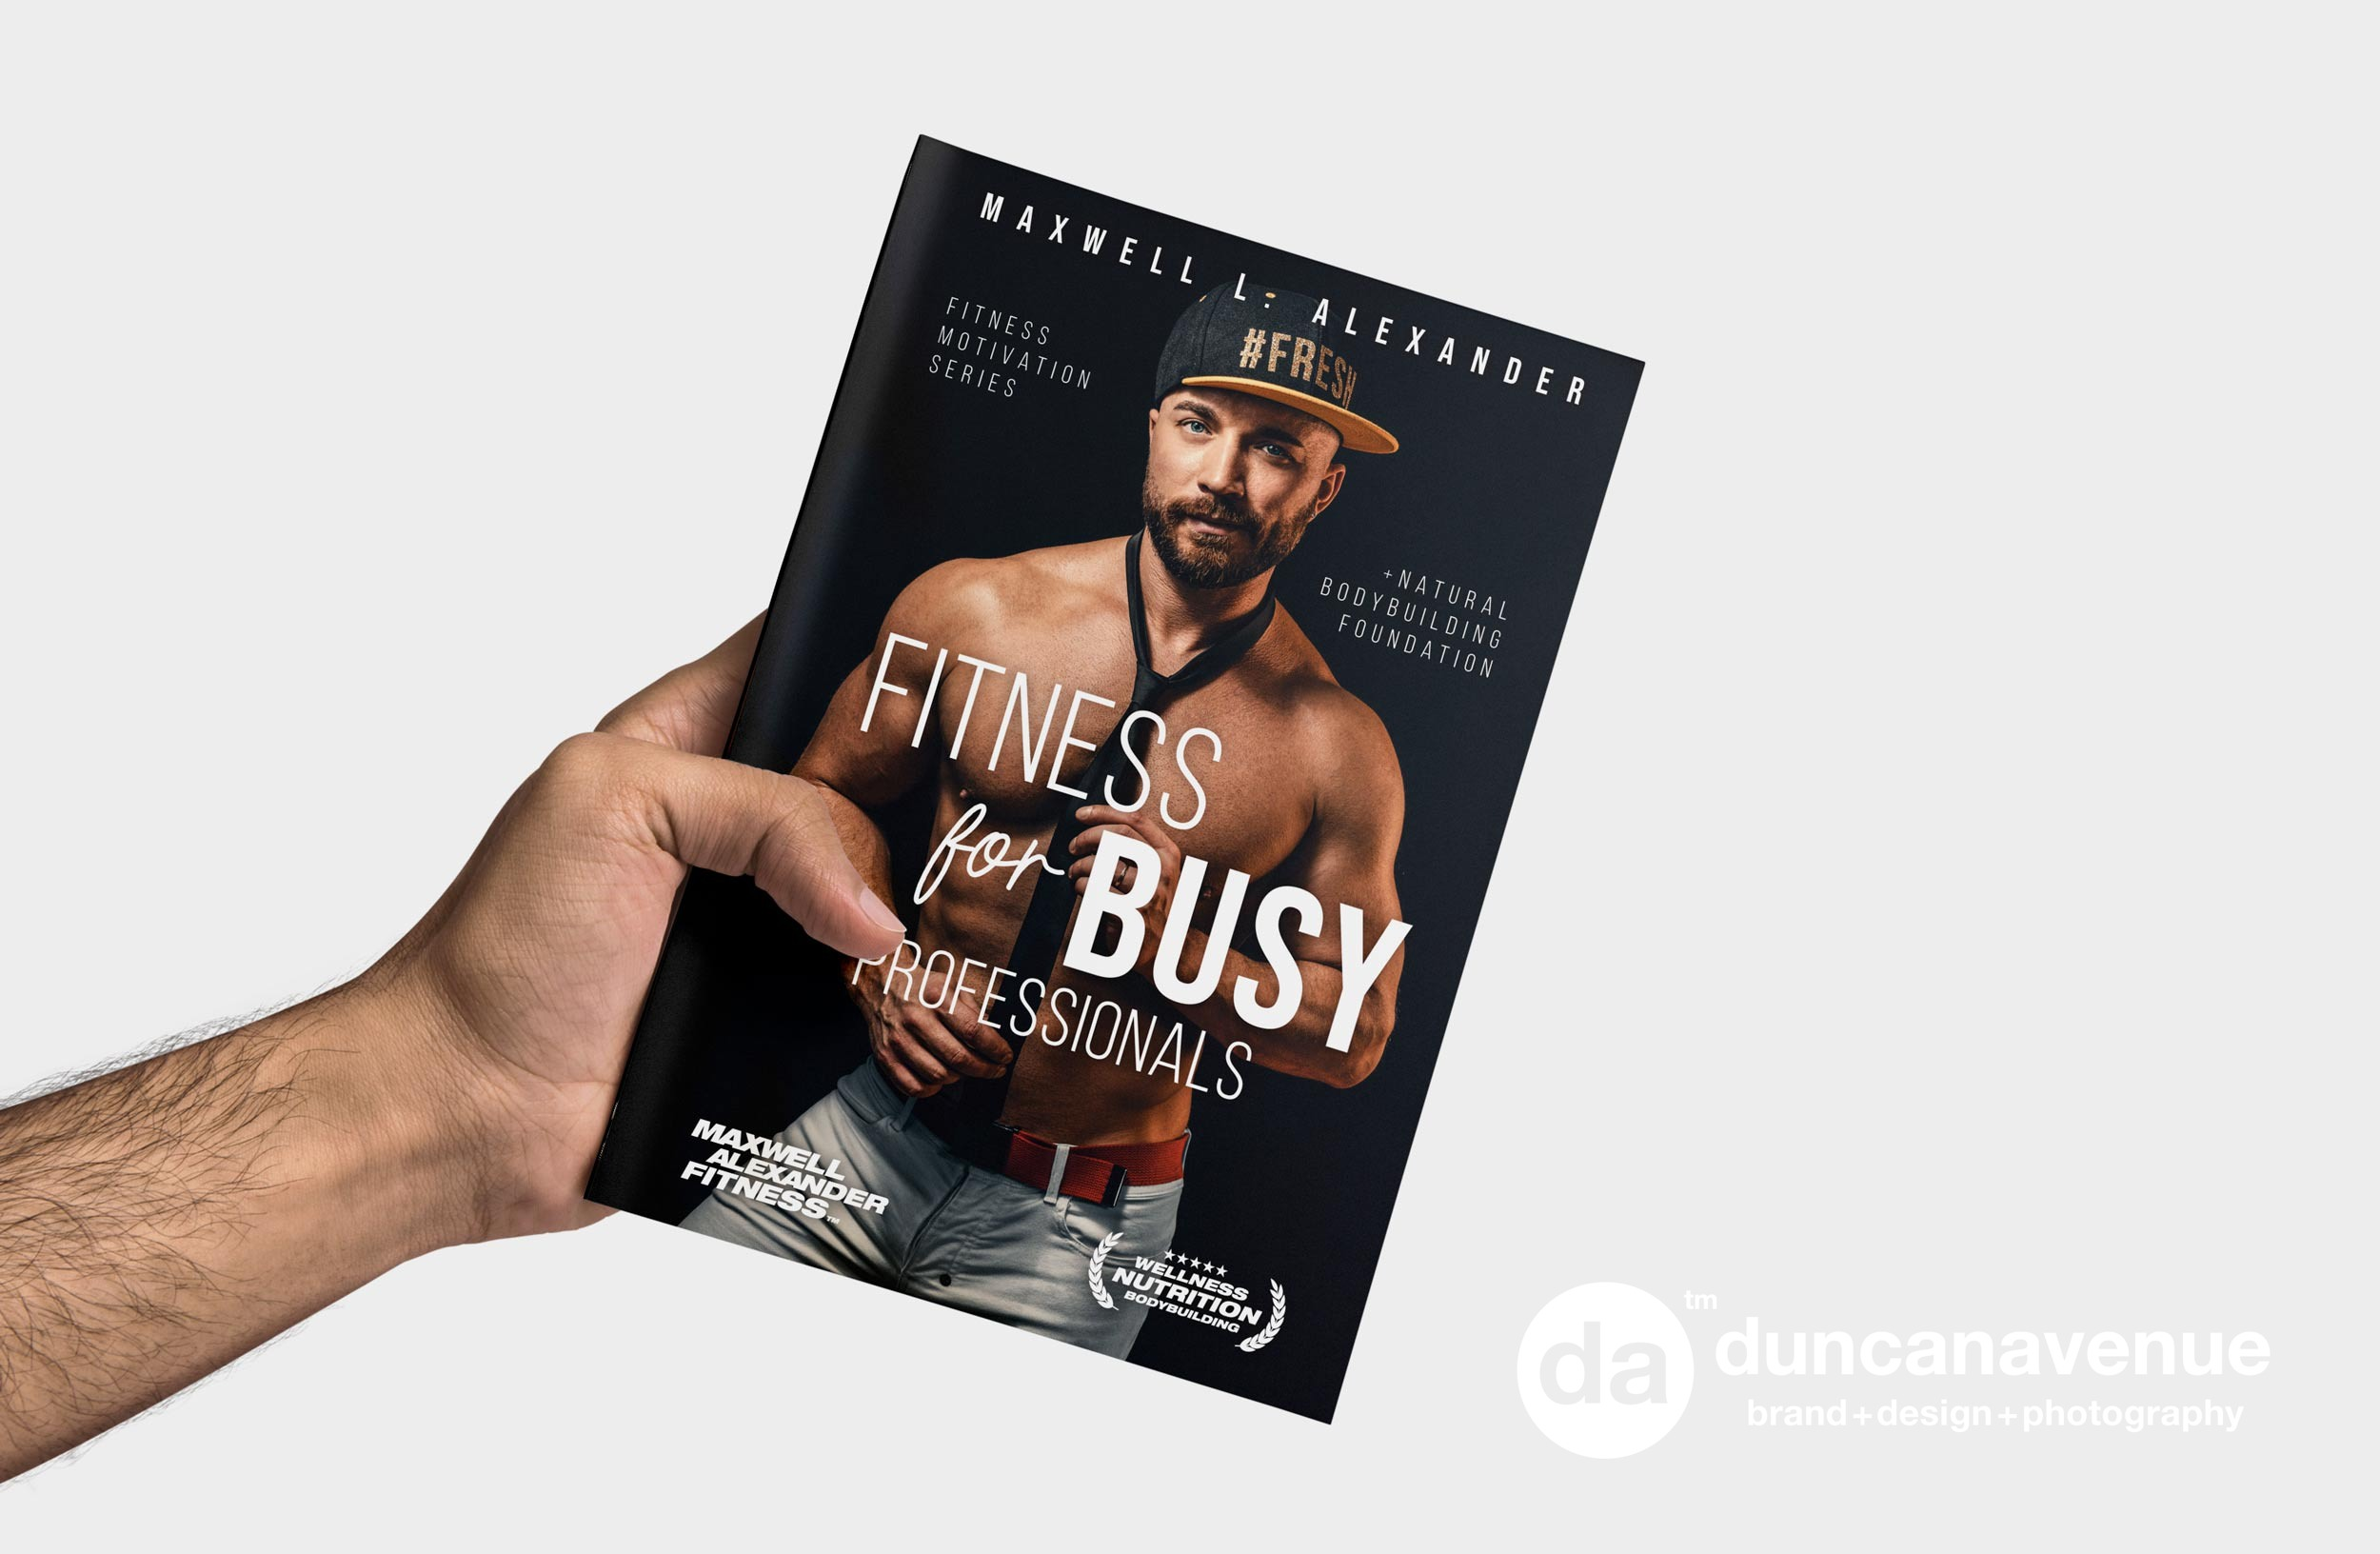 Fitness for Busy Professionals eBook by Maxwell Alexander